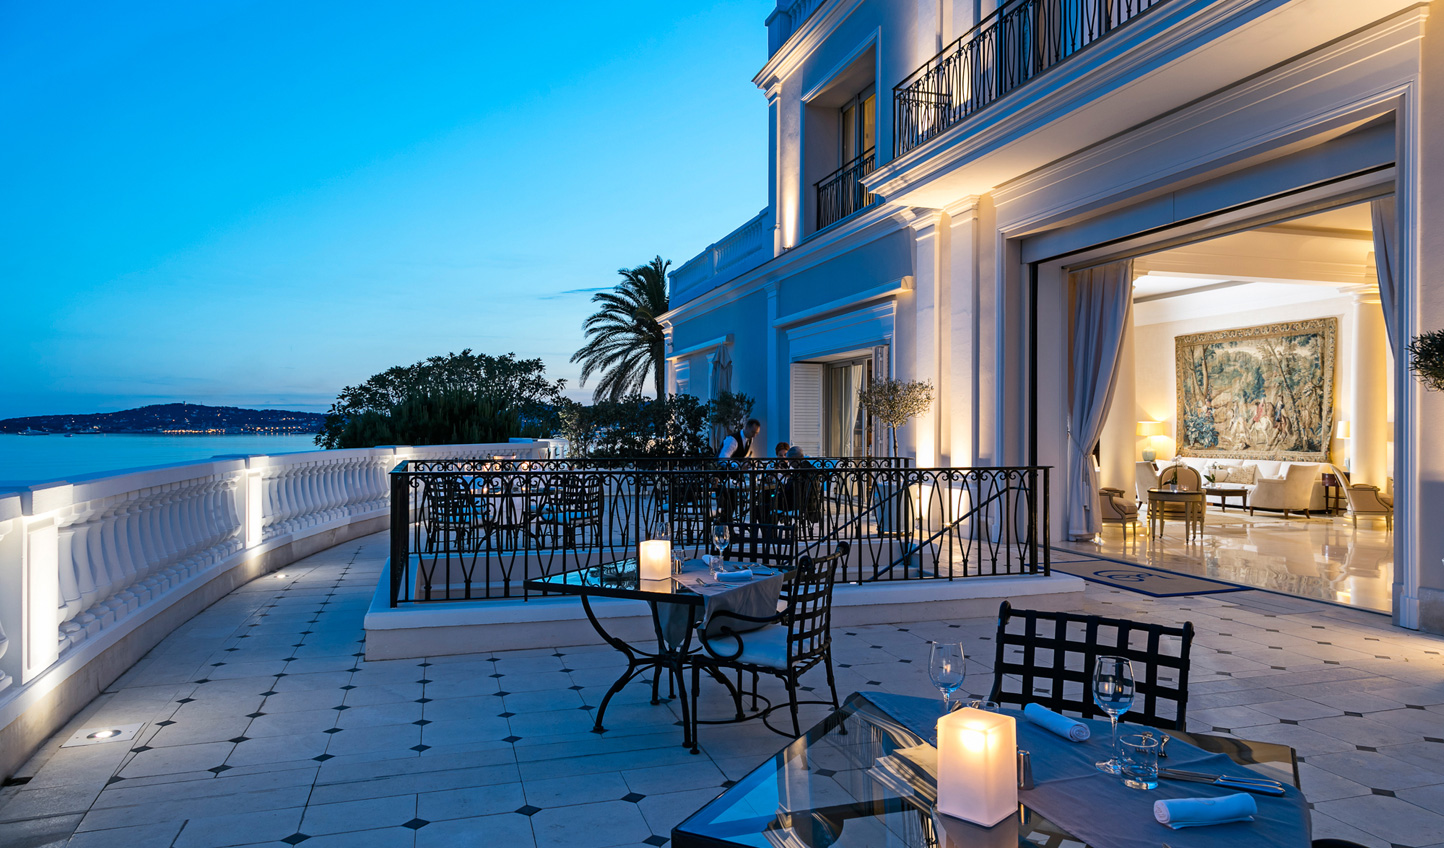 Enjoy warm summer evenings out on your private terrace